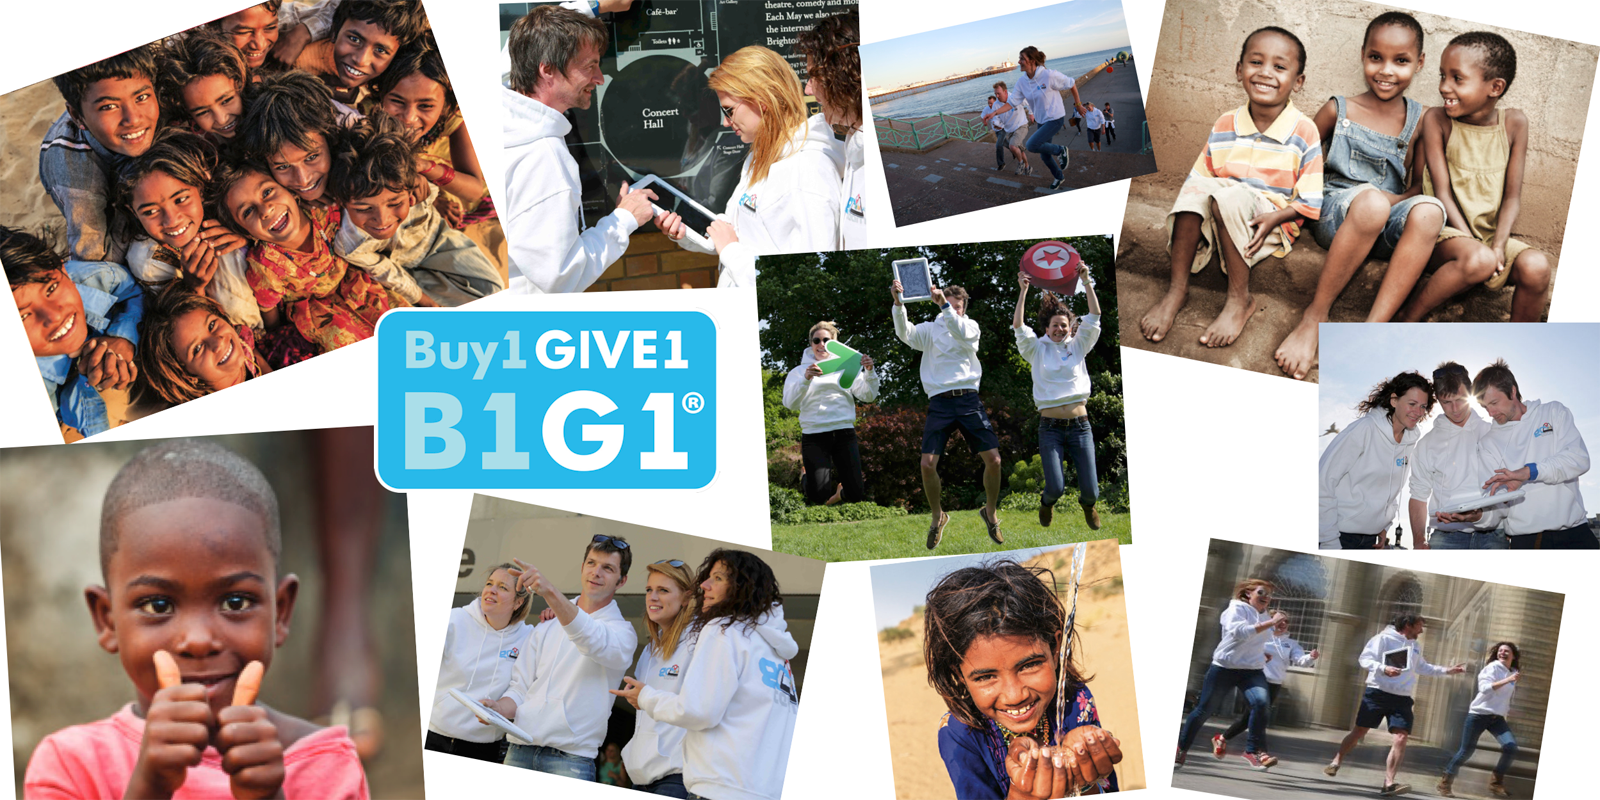 Teaming up with Buy1 Give1 to Make an Impact